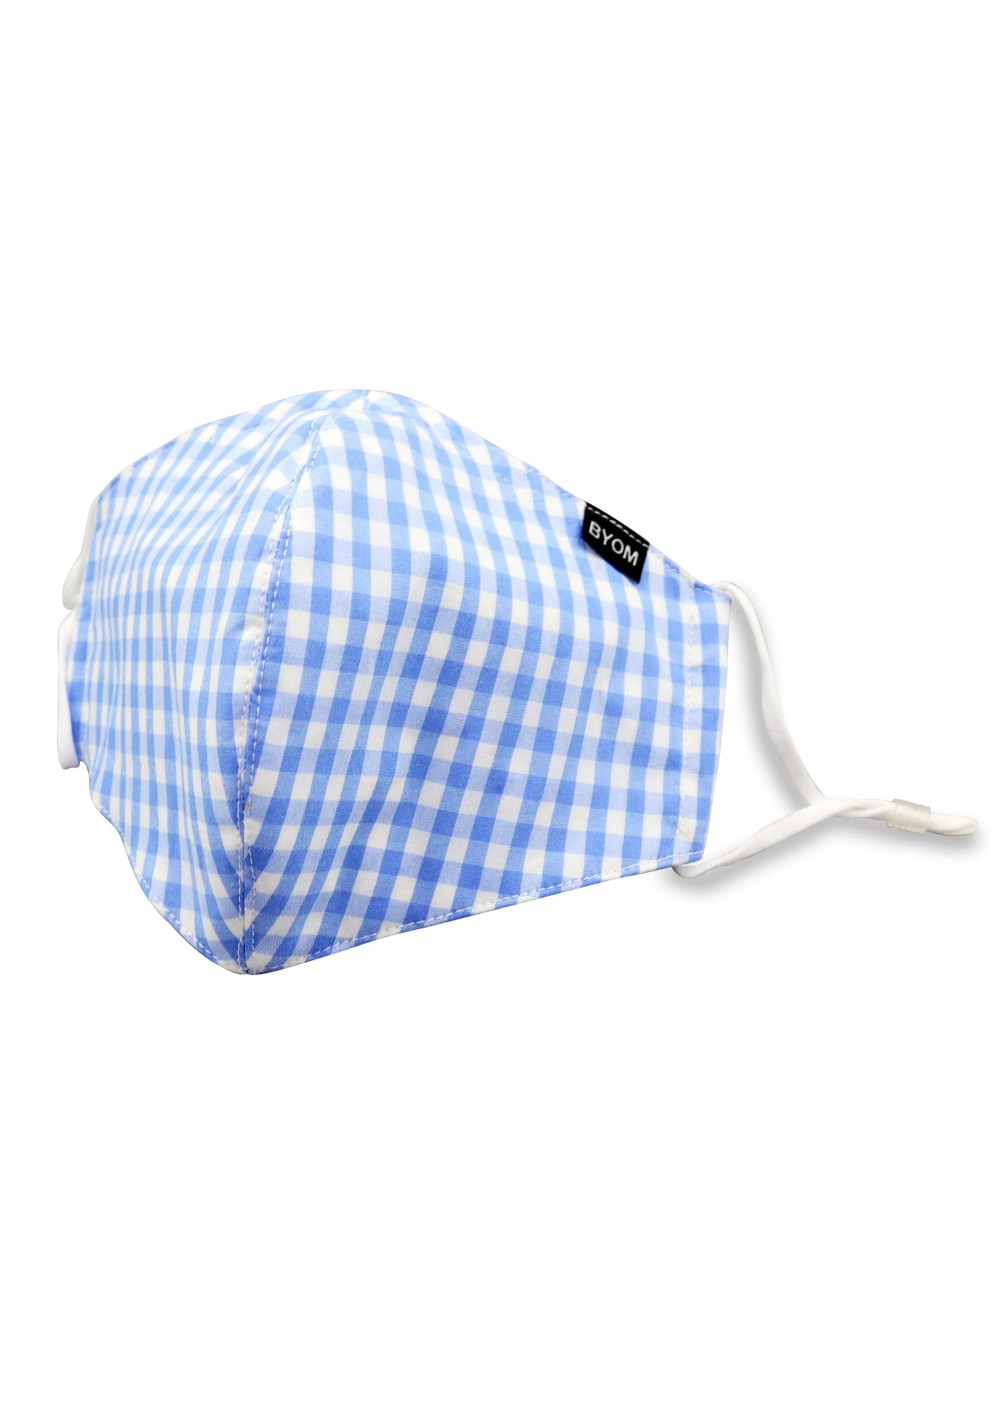 Gingham Check Cotton Mask in Light Blue